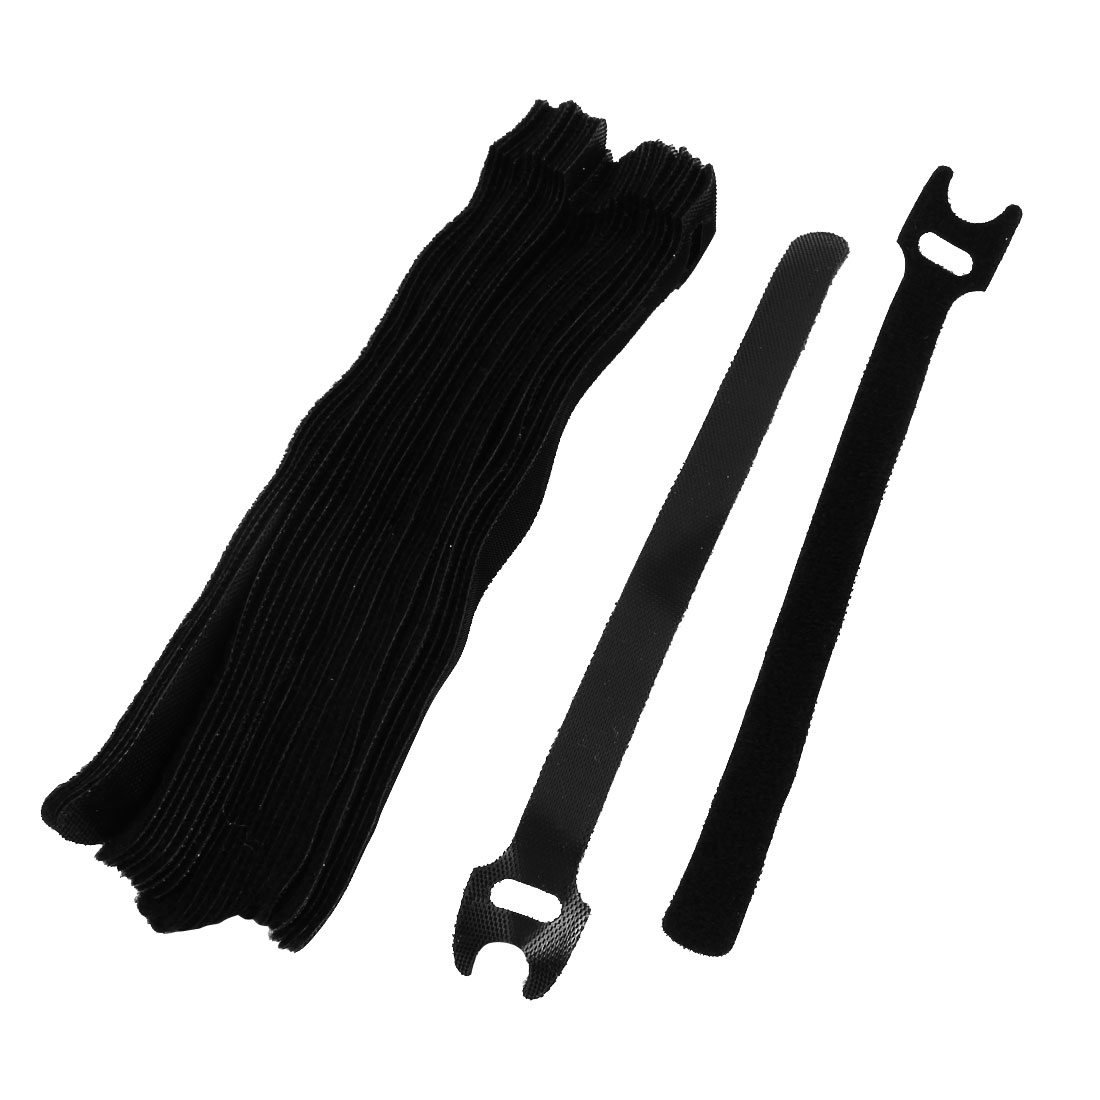 Nylon Reusable Fastener Hook Loop Tie Strap Cable Band Belt Black 30 Pcs